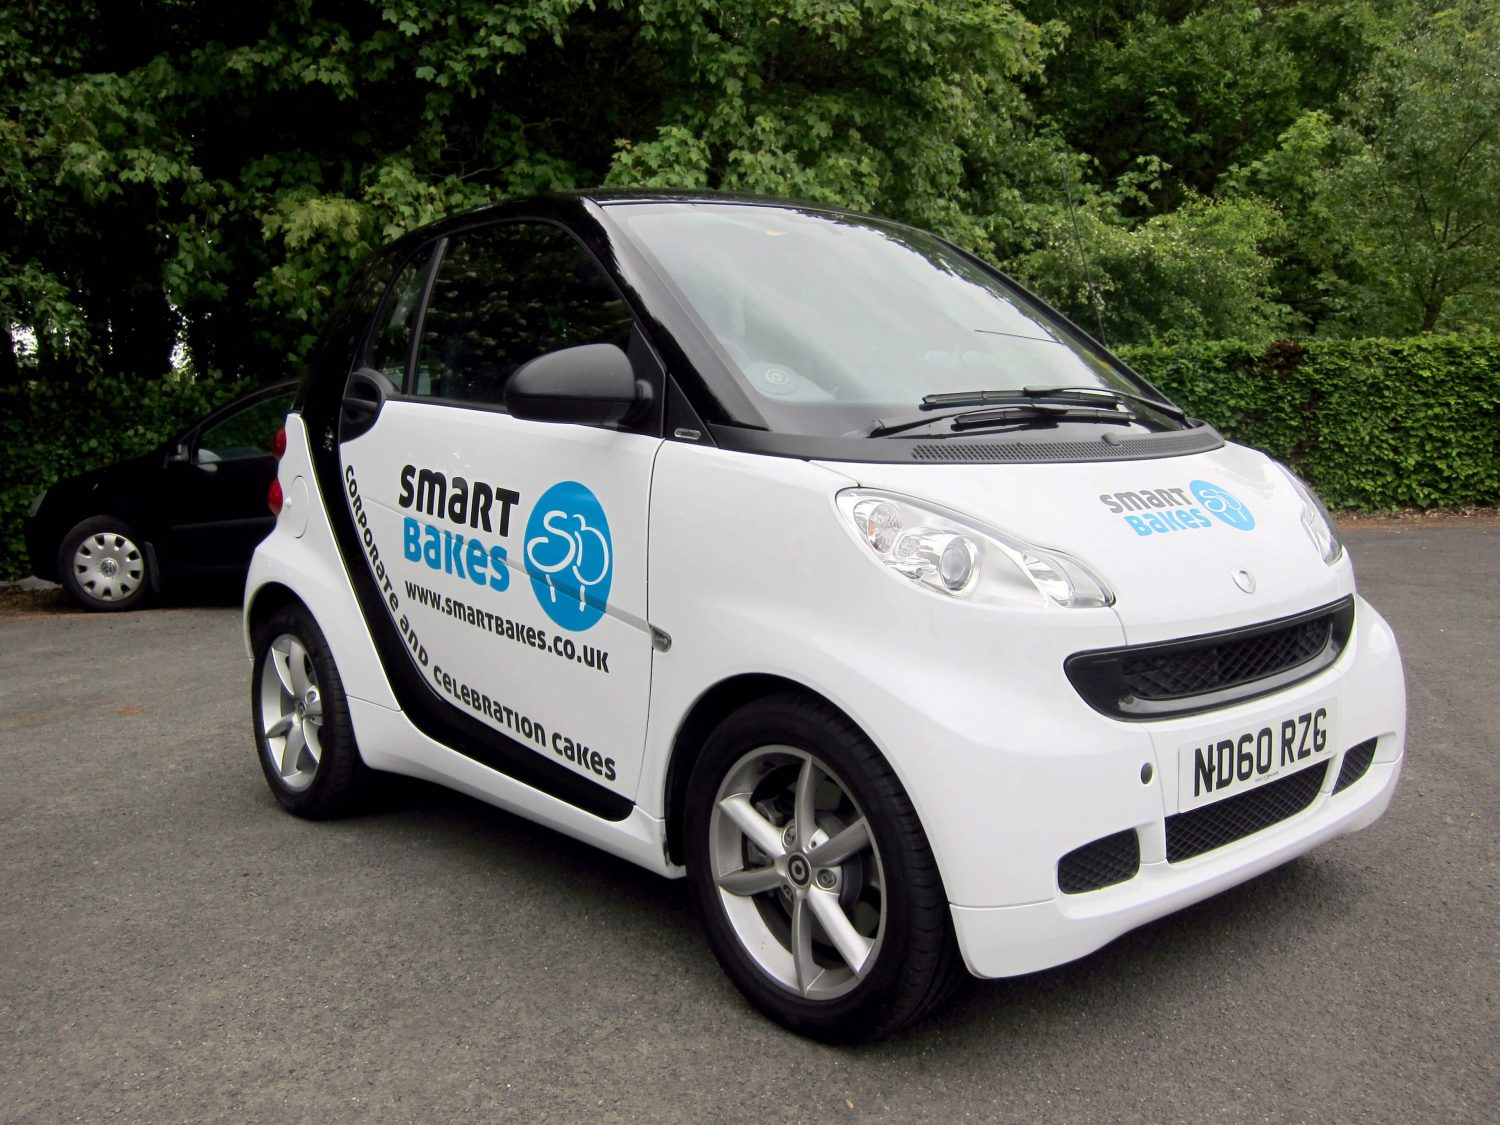 SmartBakes car wrap